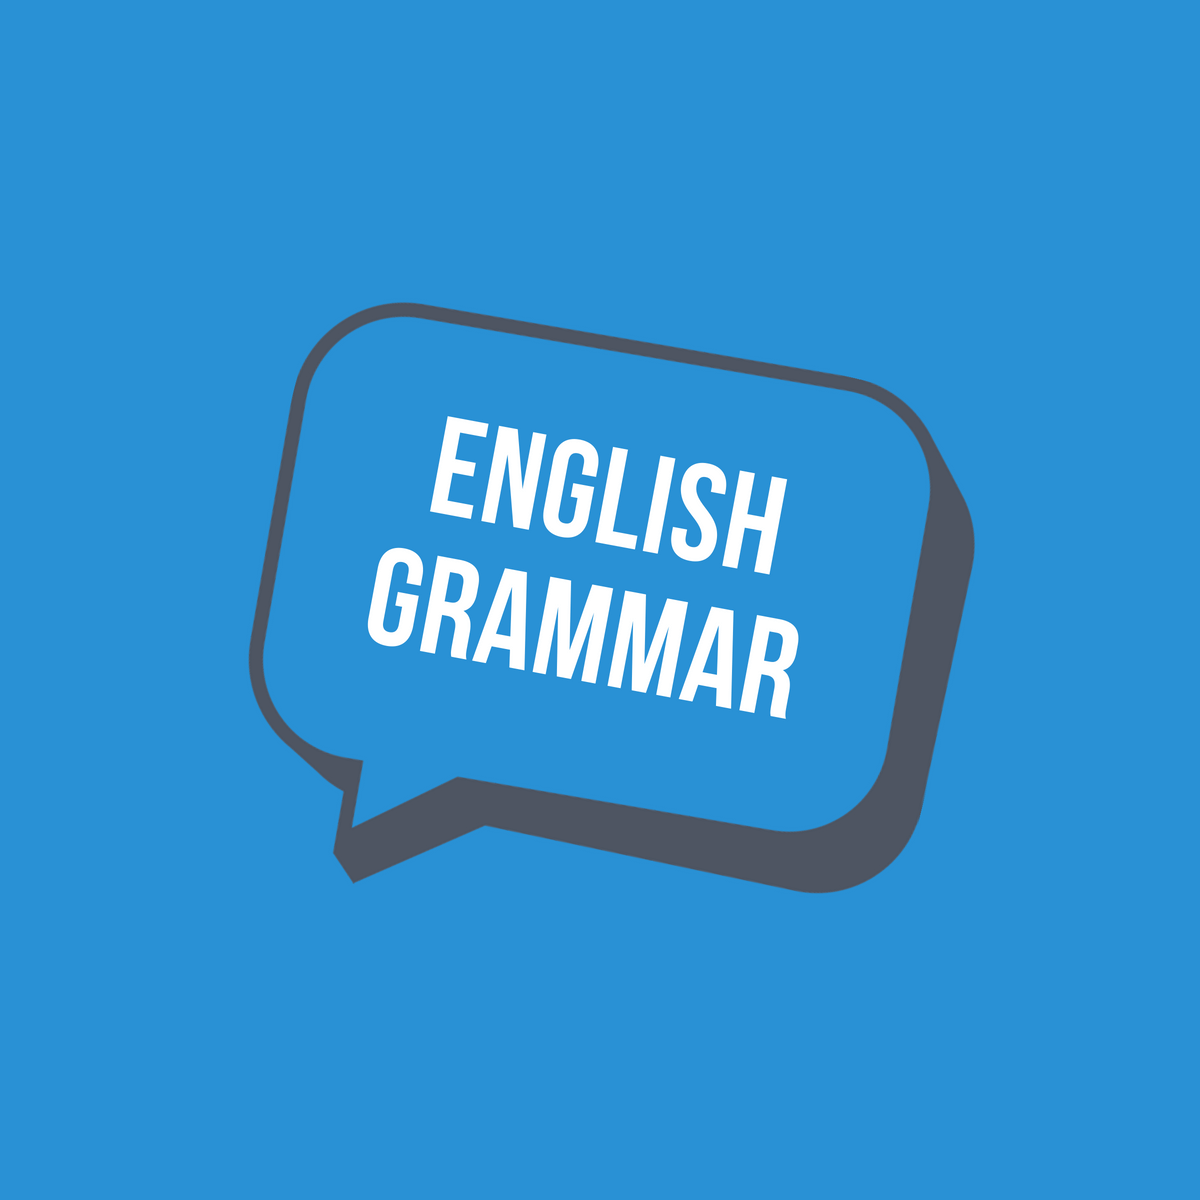 12 Basic English Grammar Rules And Tips You Absolutely